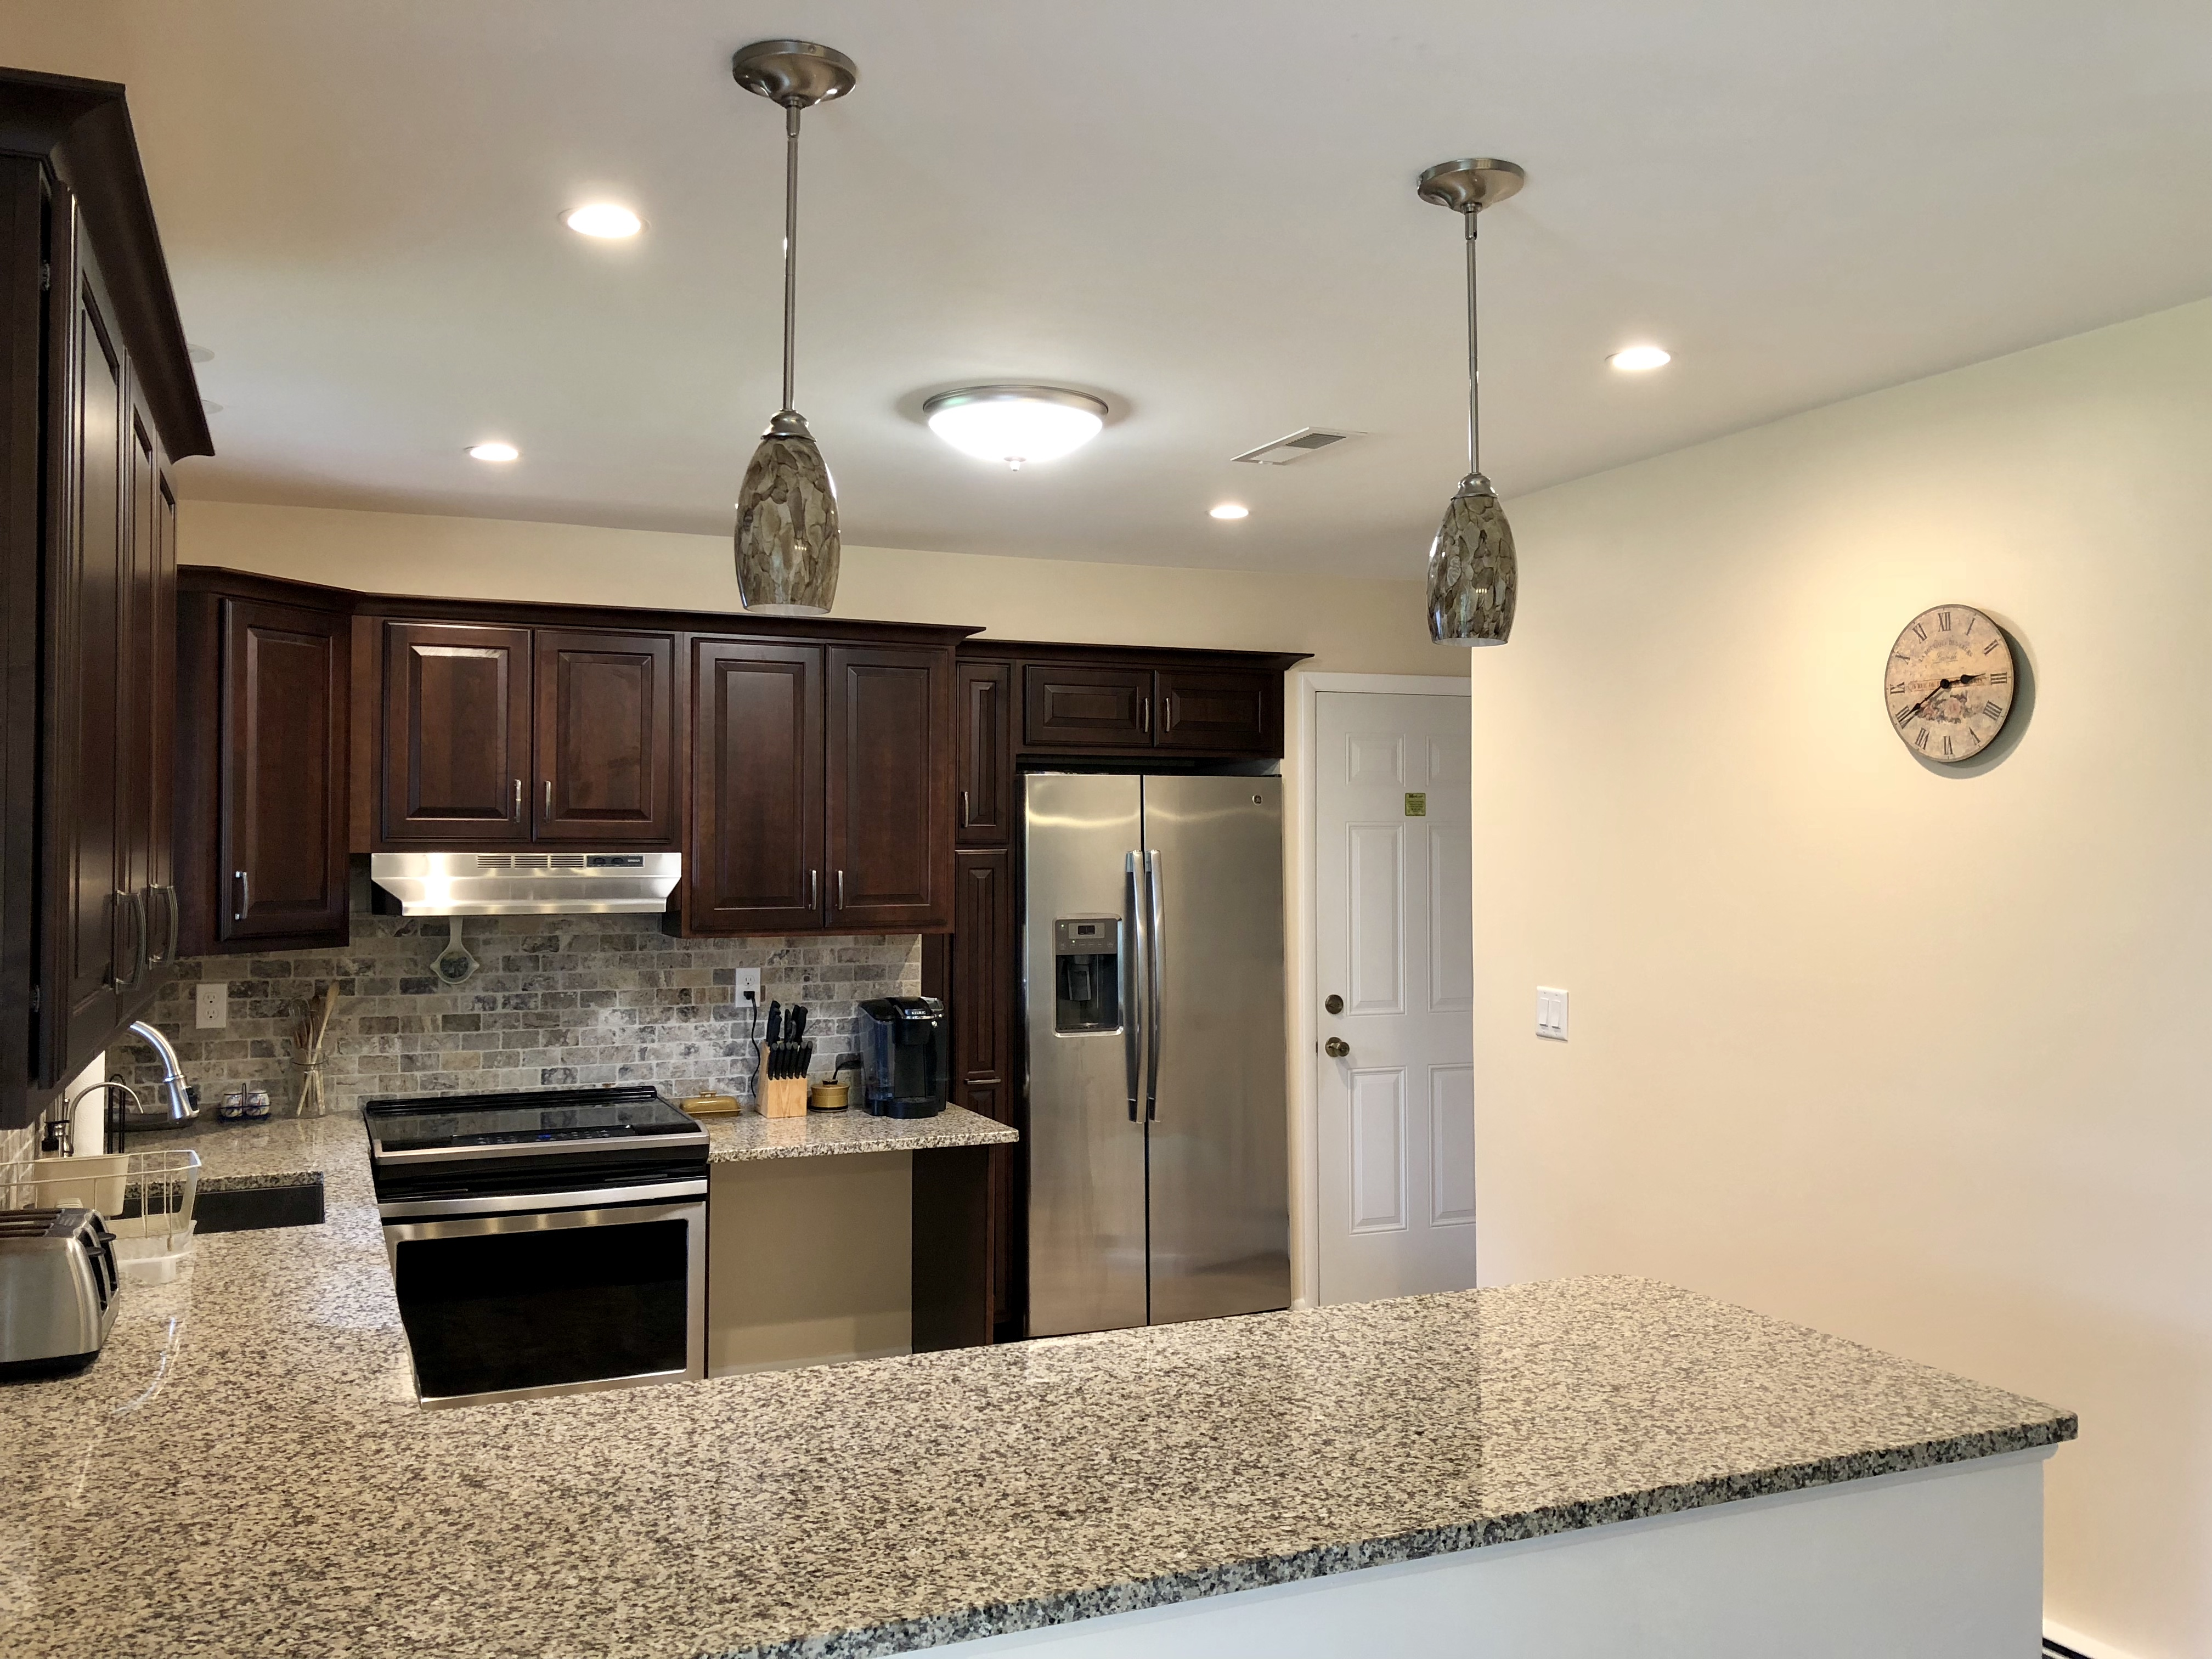 decor countertops floors winfield pa 17889 angies list.htm g contracting llc reviews catasauqua  pa angie s list  g contracting llc reviews catasauqua